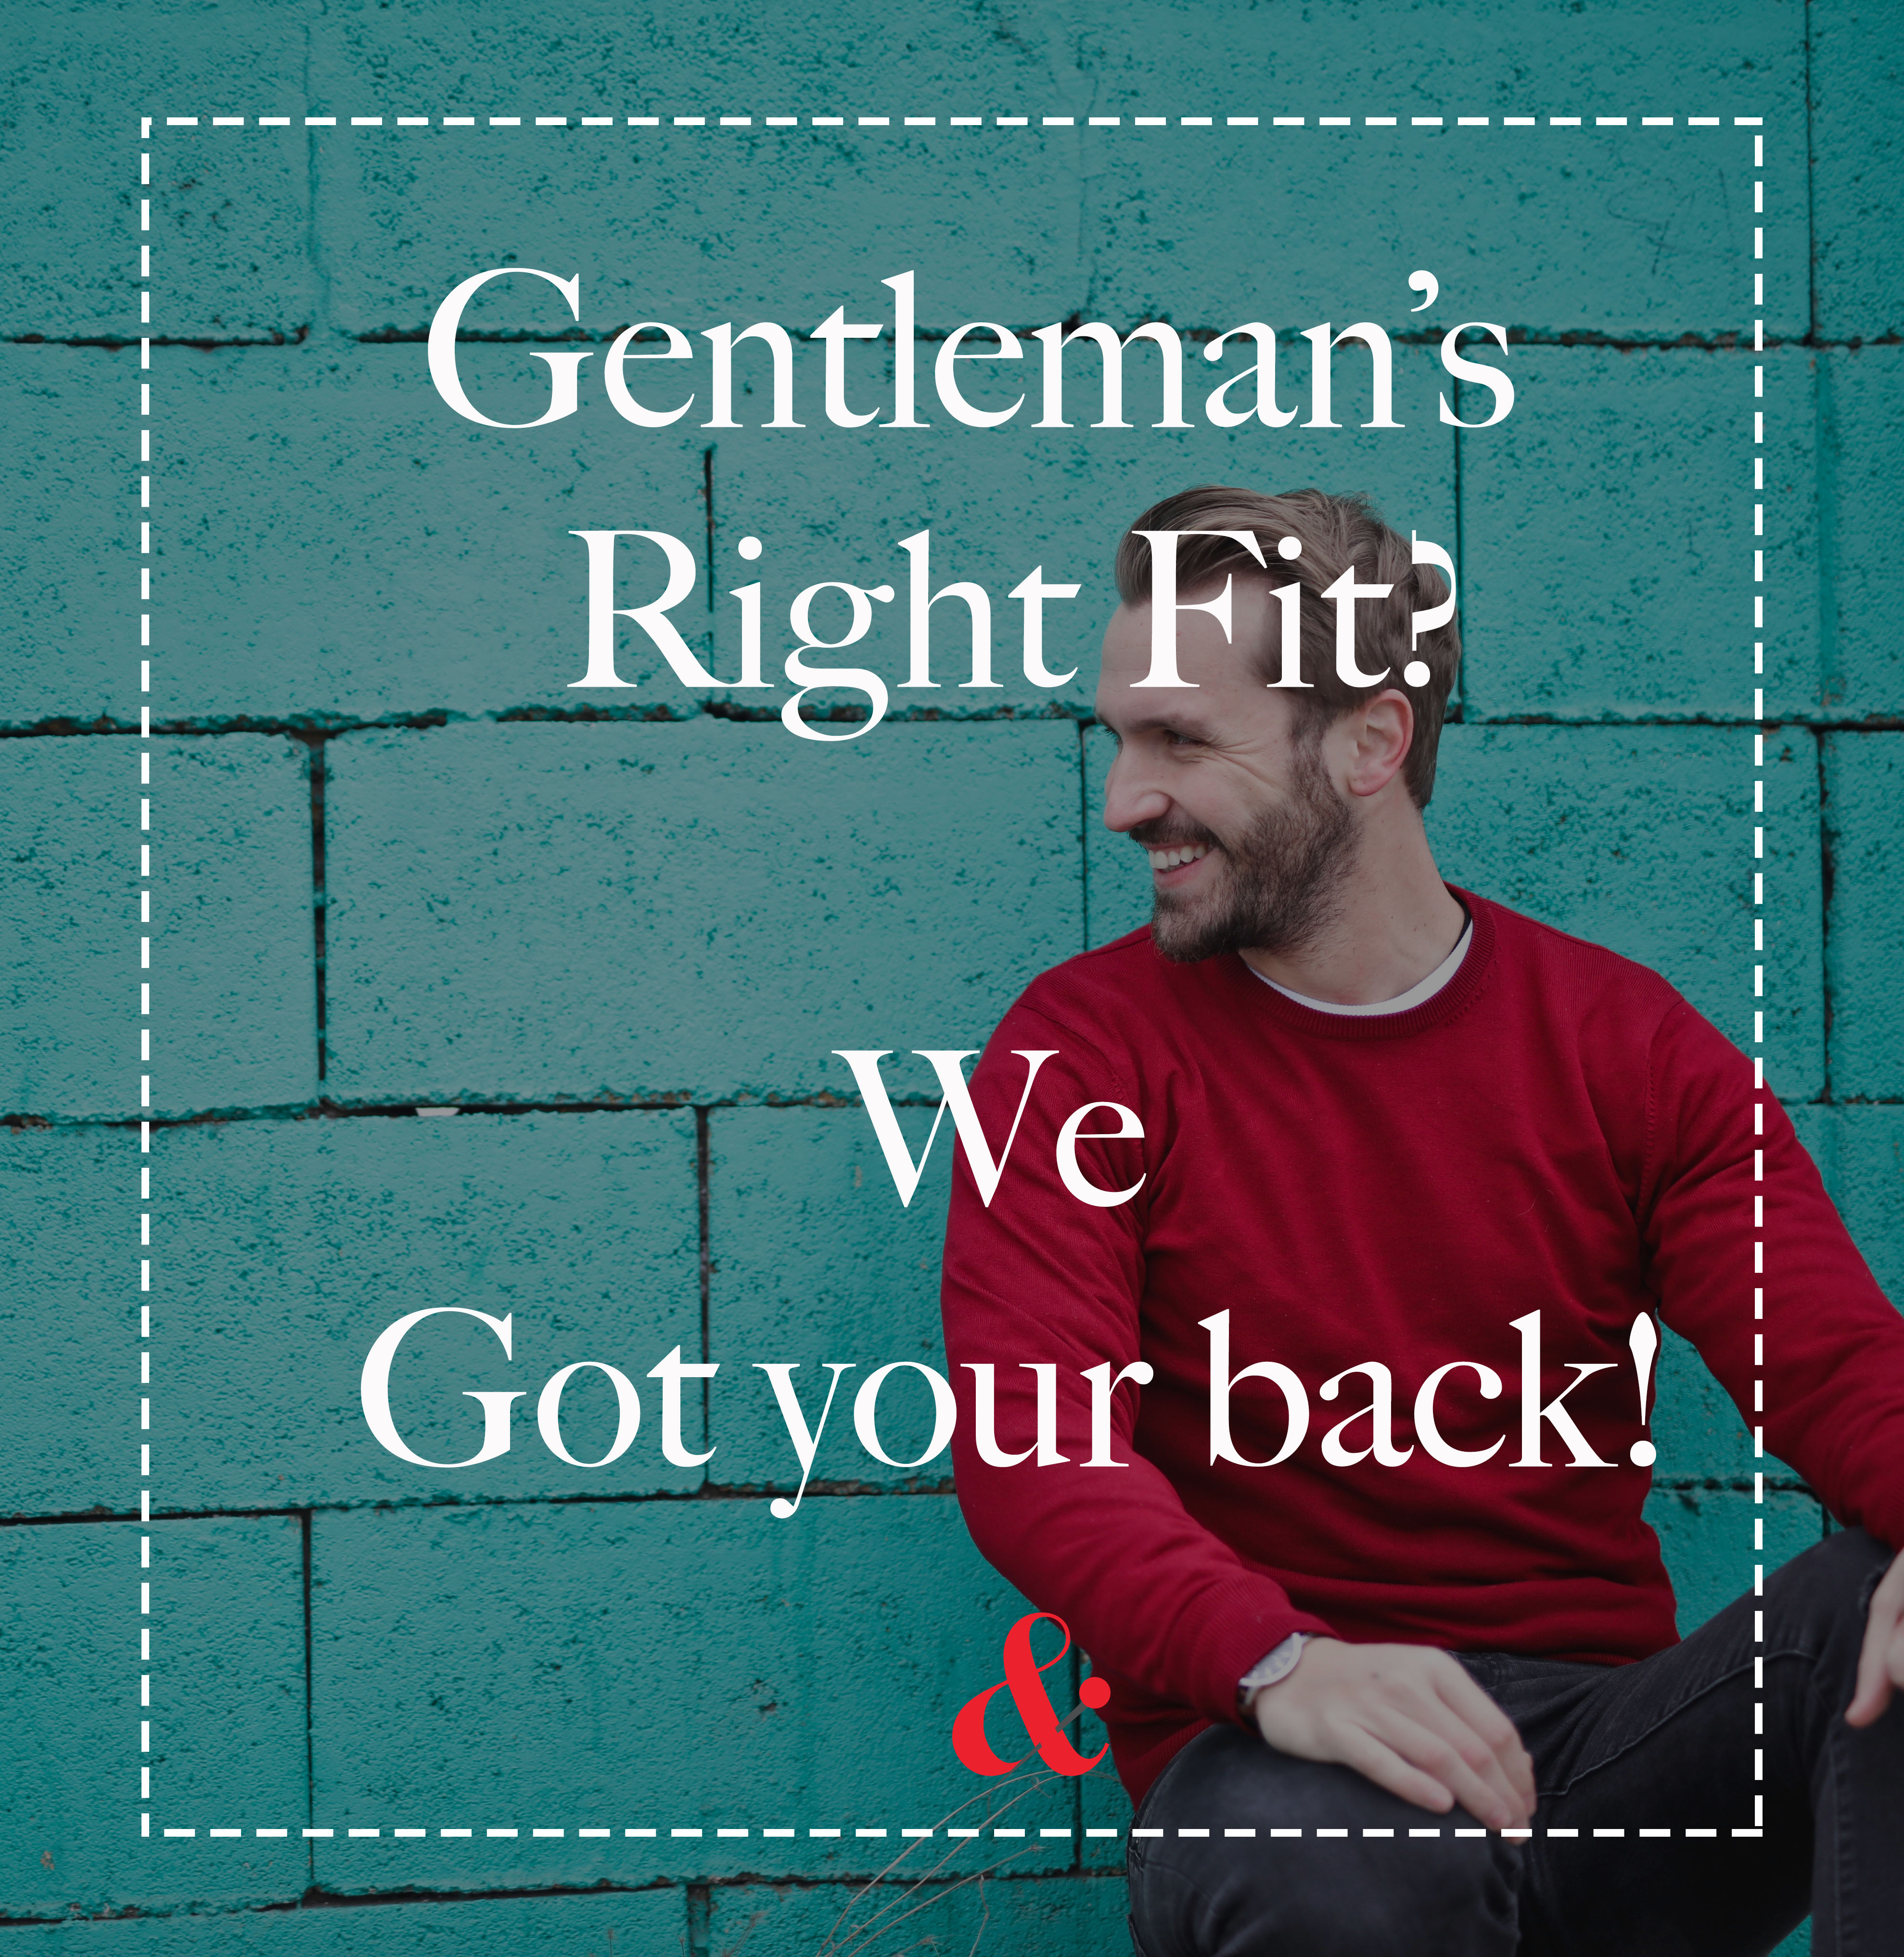 Men: The Right Fit